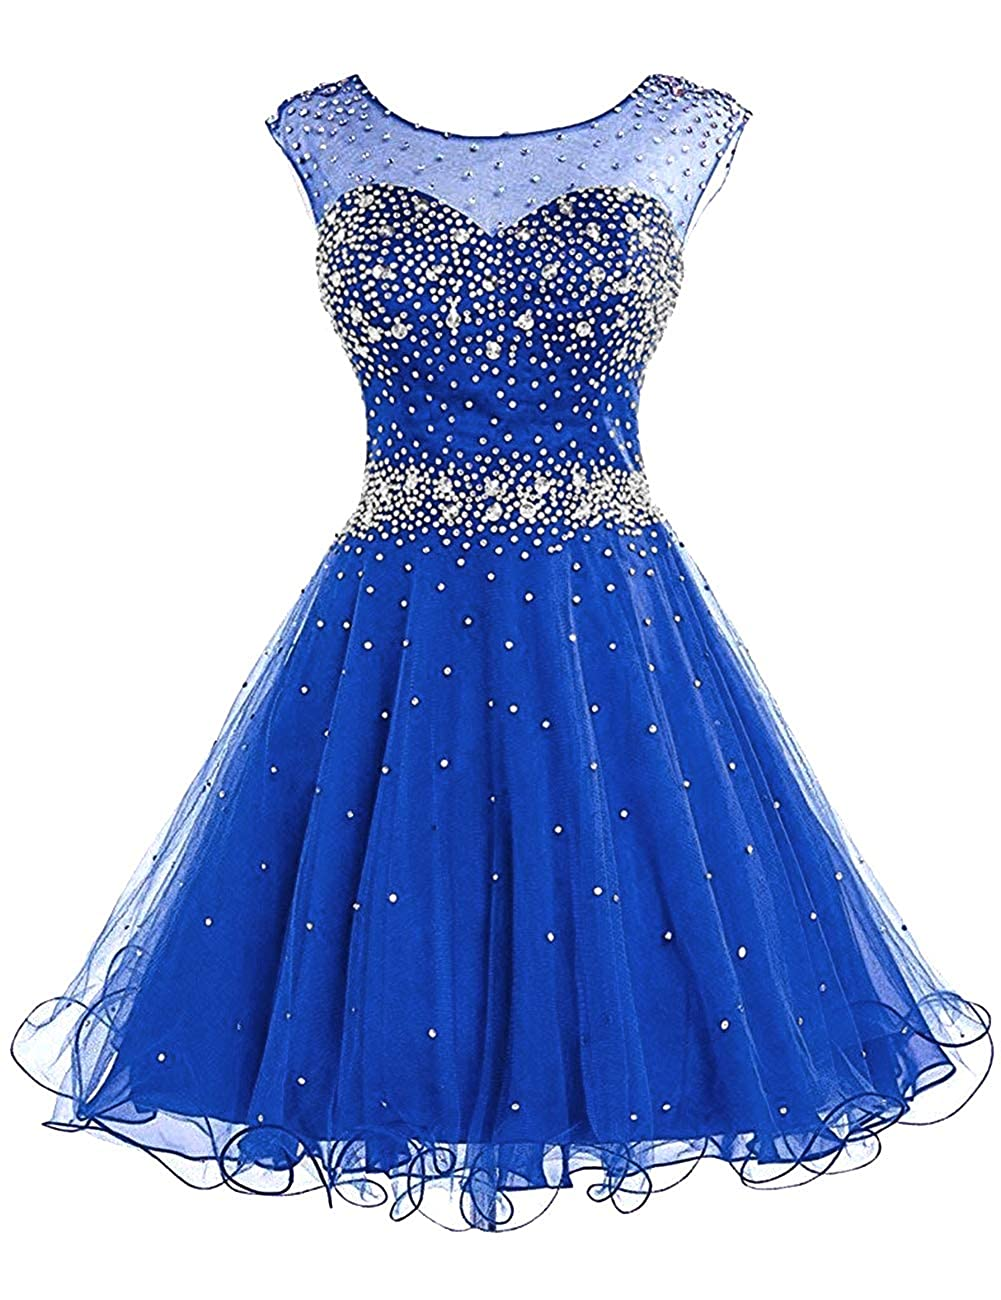 Dark bluee H.S.D Homecoming Dresses Prom Party Dresses Short Cocktail Dress Beads Graduation Gown